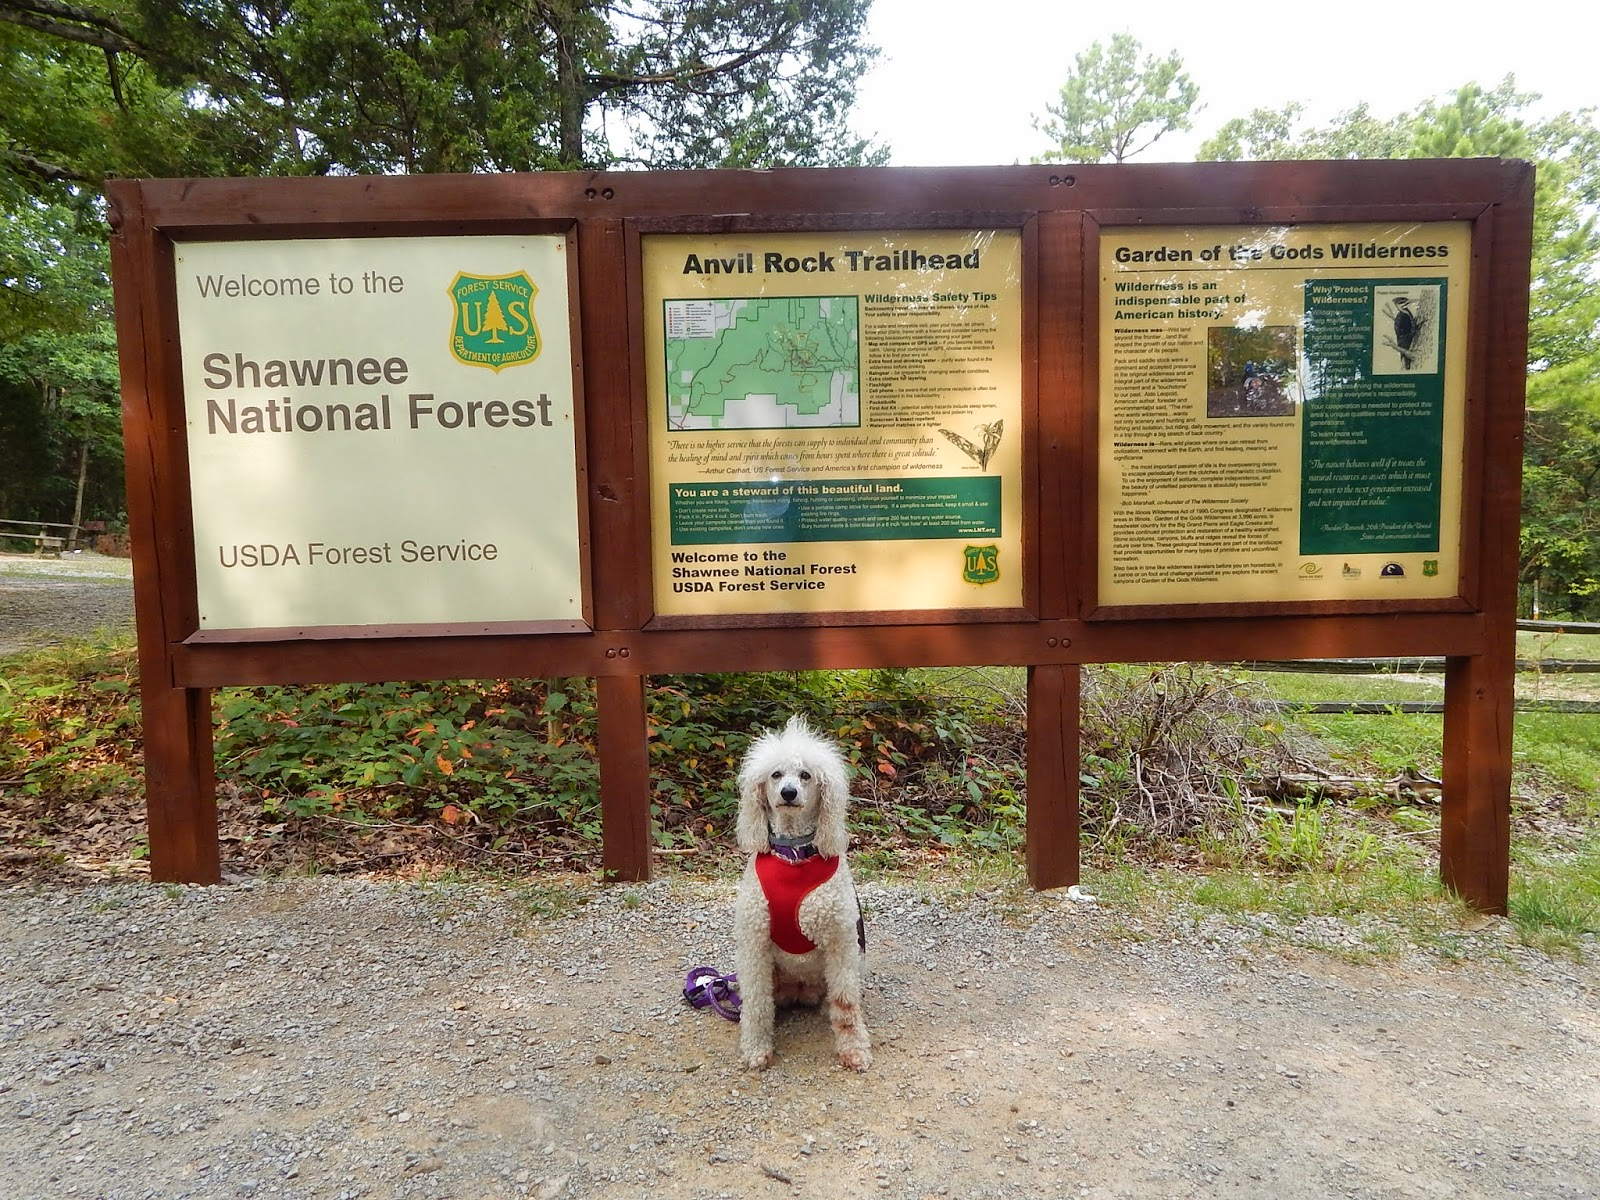 A dog at Shawnee National Forest